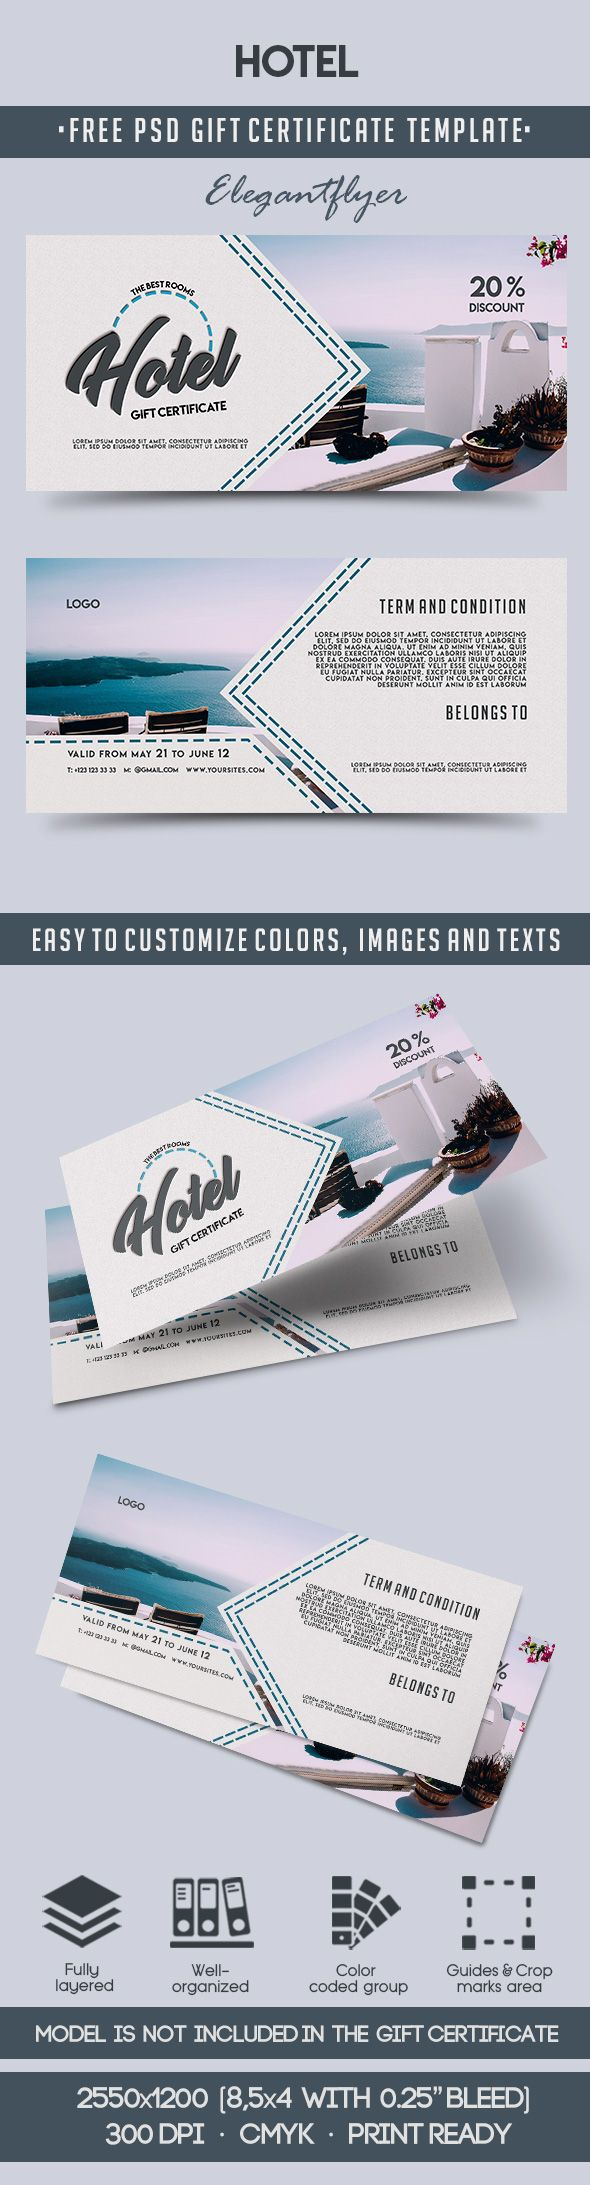 Free Gift Certificate Template For Hotel